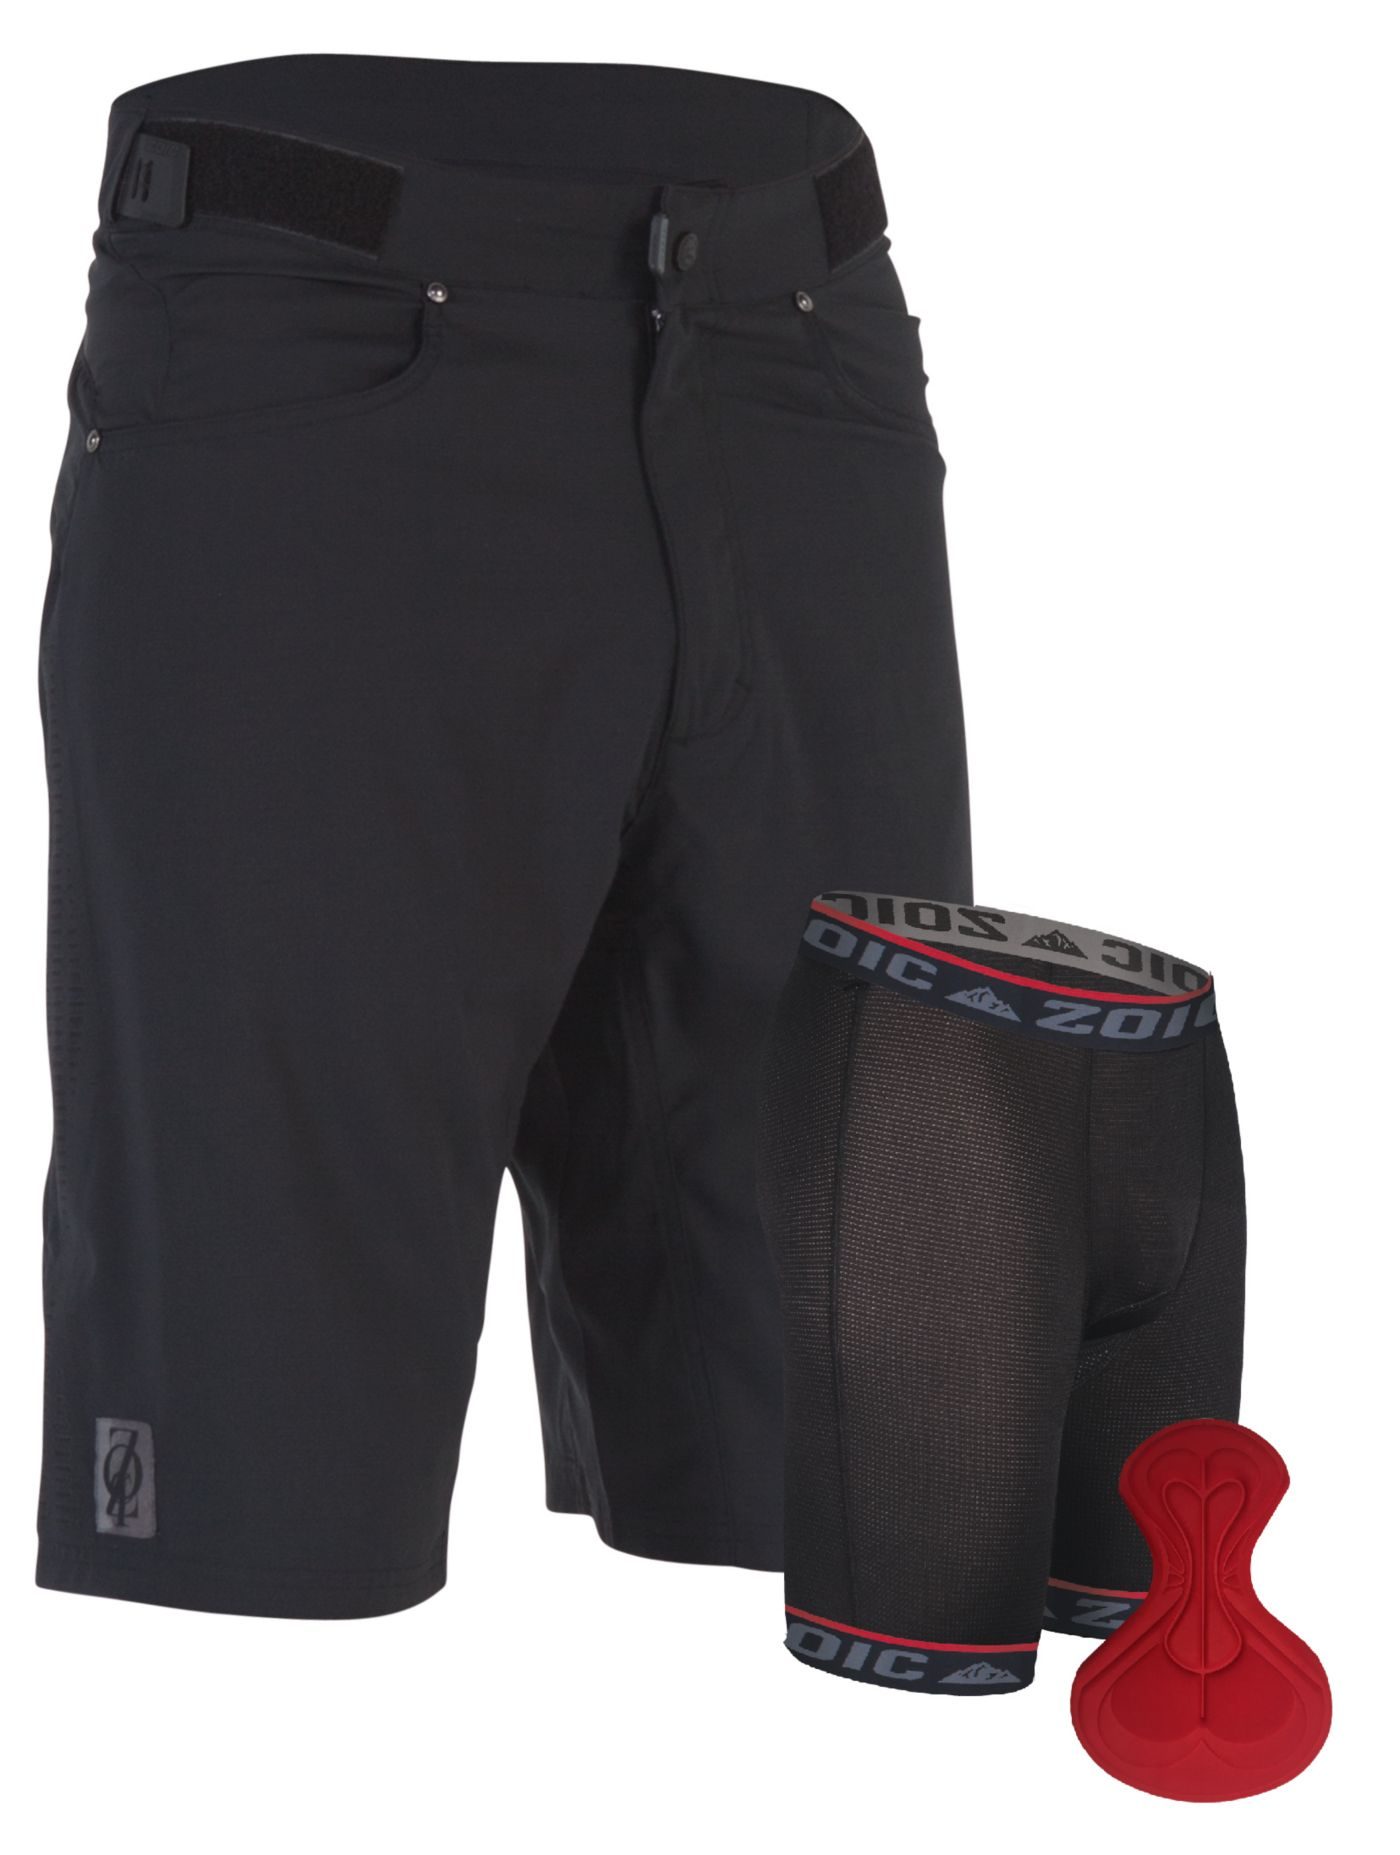 ZOIC Men's Ether SL Cycling Shorts with Essential Liner